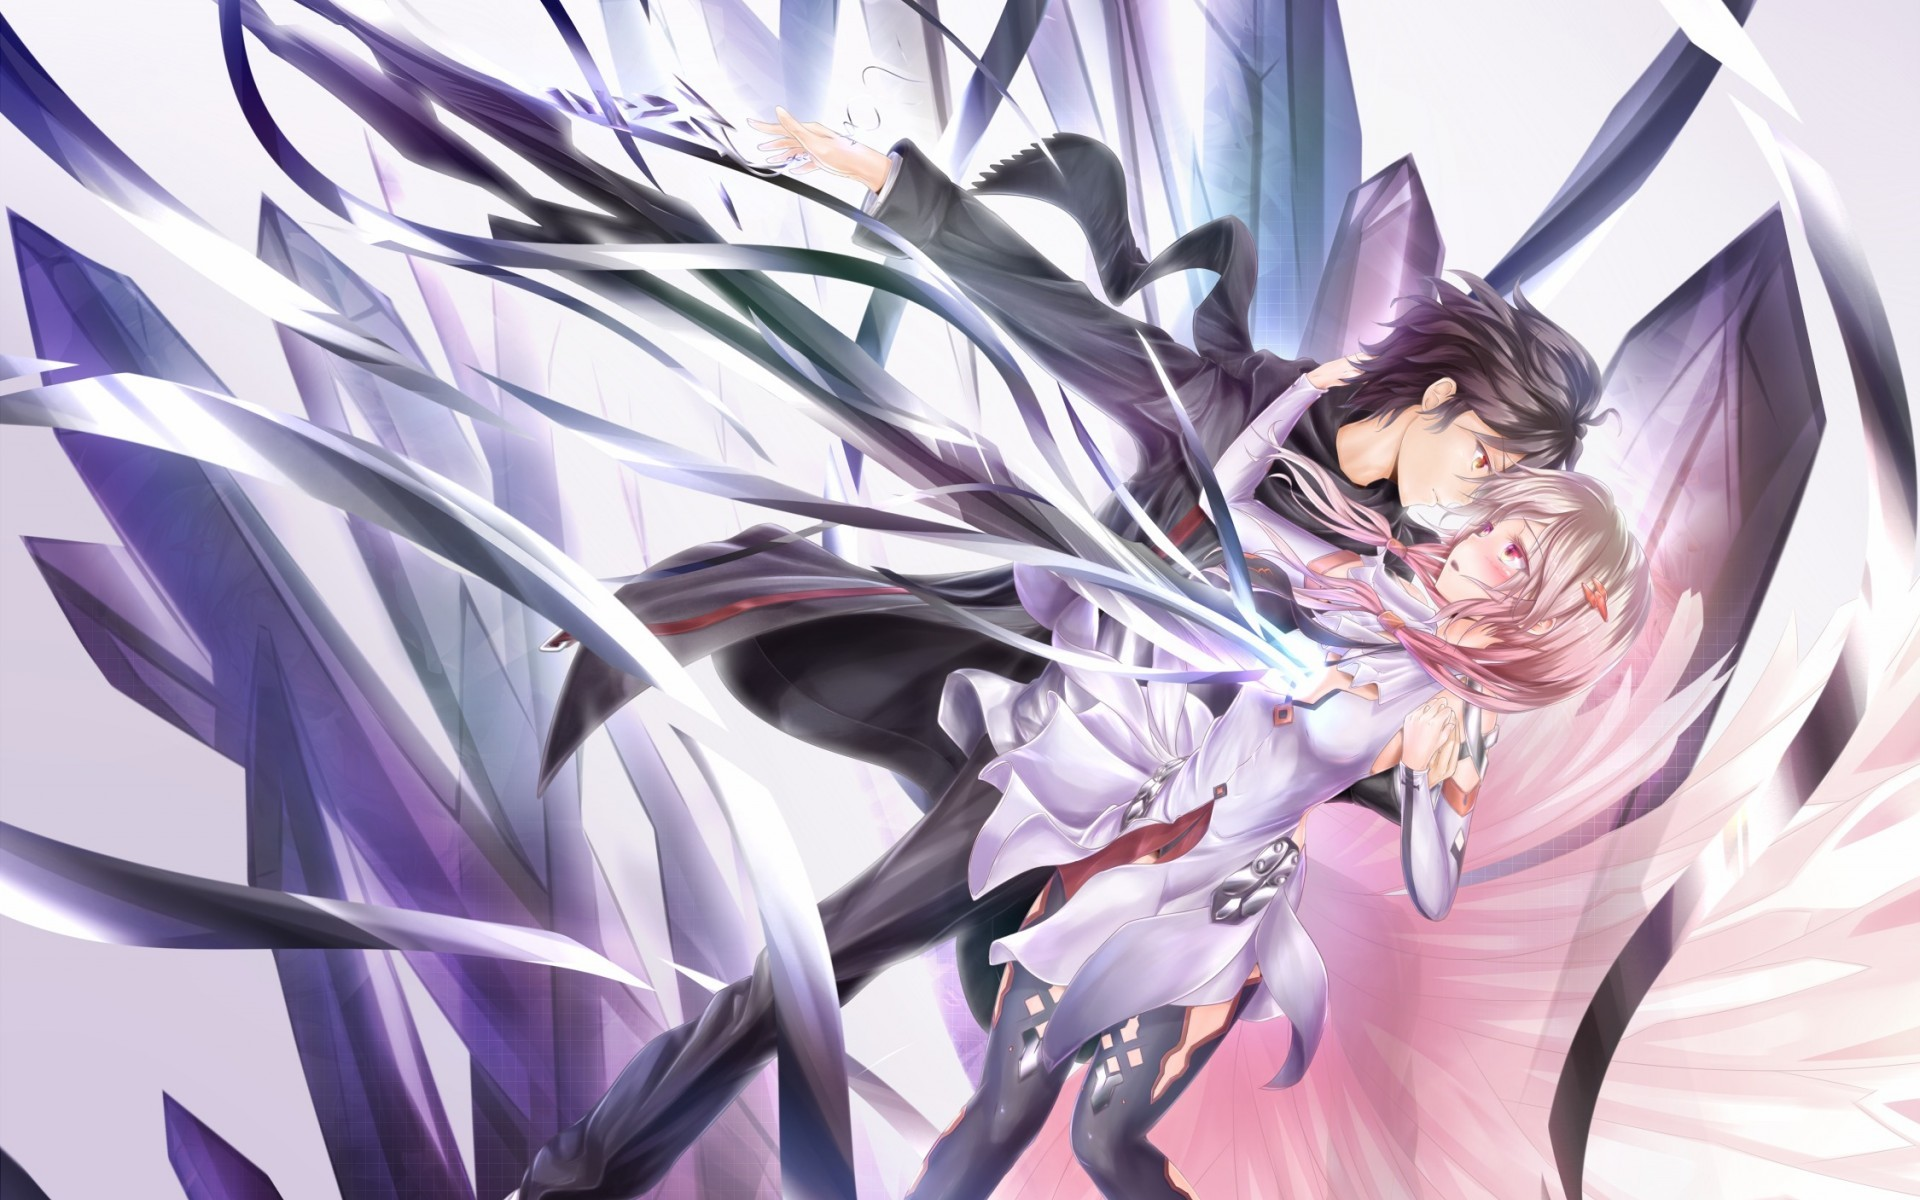 Cute Couple Wallpapers For Mobile Phones Guilty Crown Wallpaper 1920x1080 85 Images